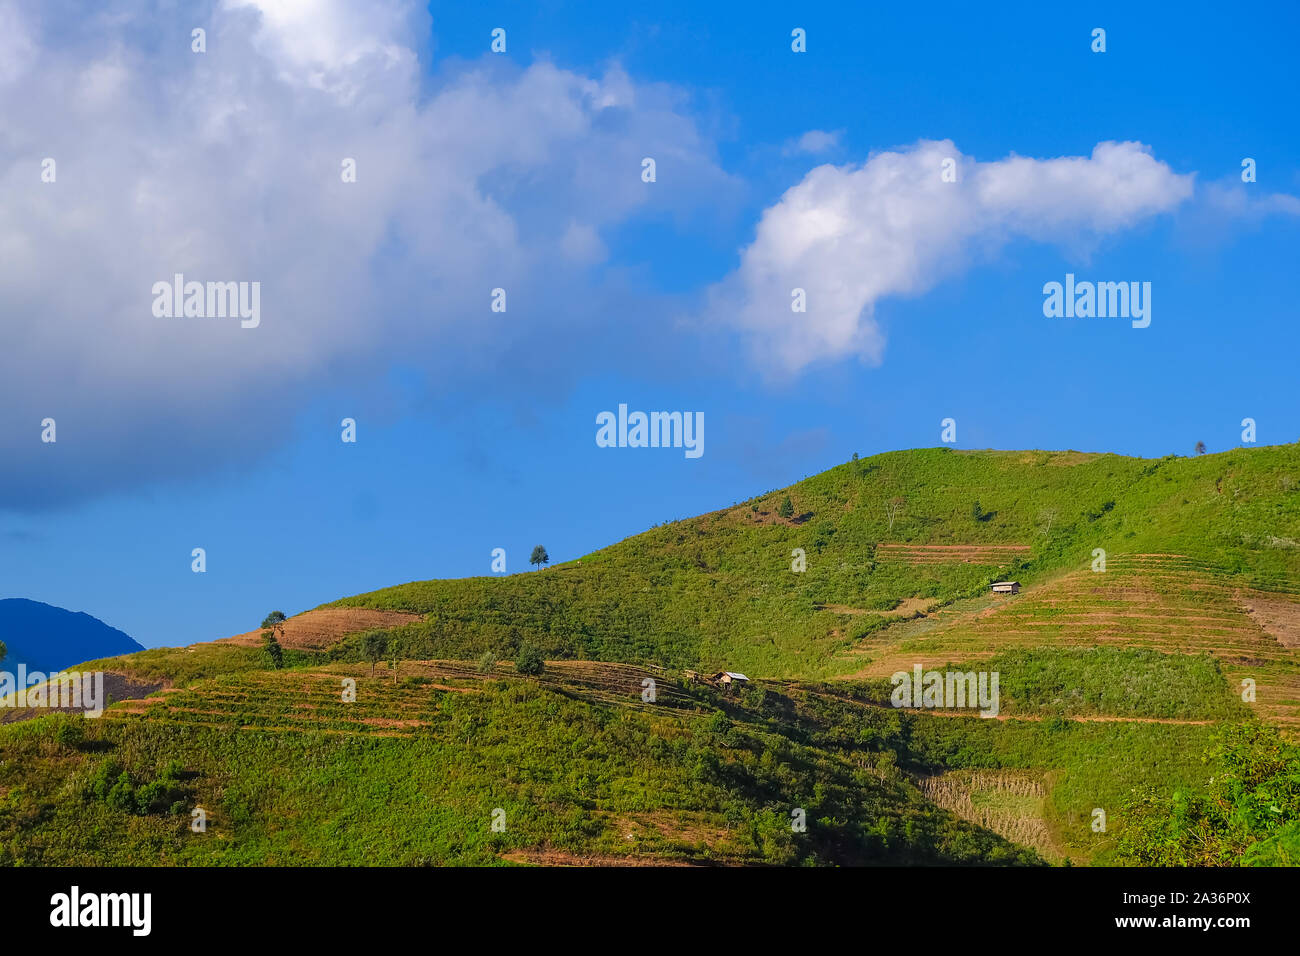 Beautiful landscape of mountain with cloud and blue sky in Ta Xua, Northwest Vietnam. Royalty high quality stock image of landscape, mountain. Stock Photo